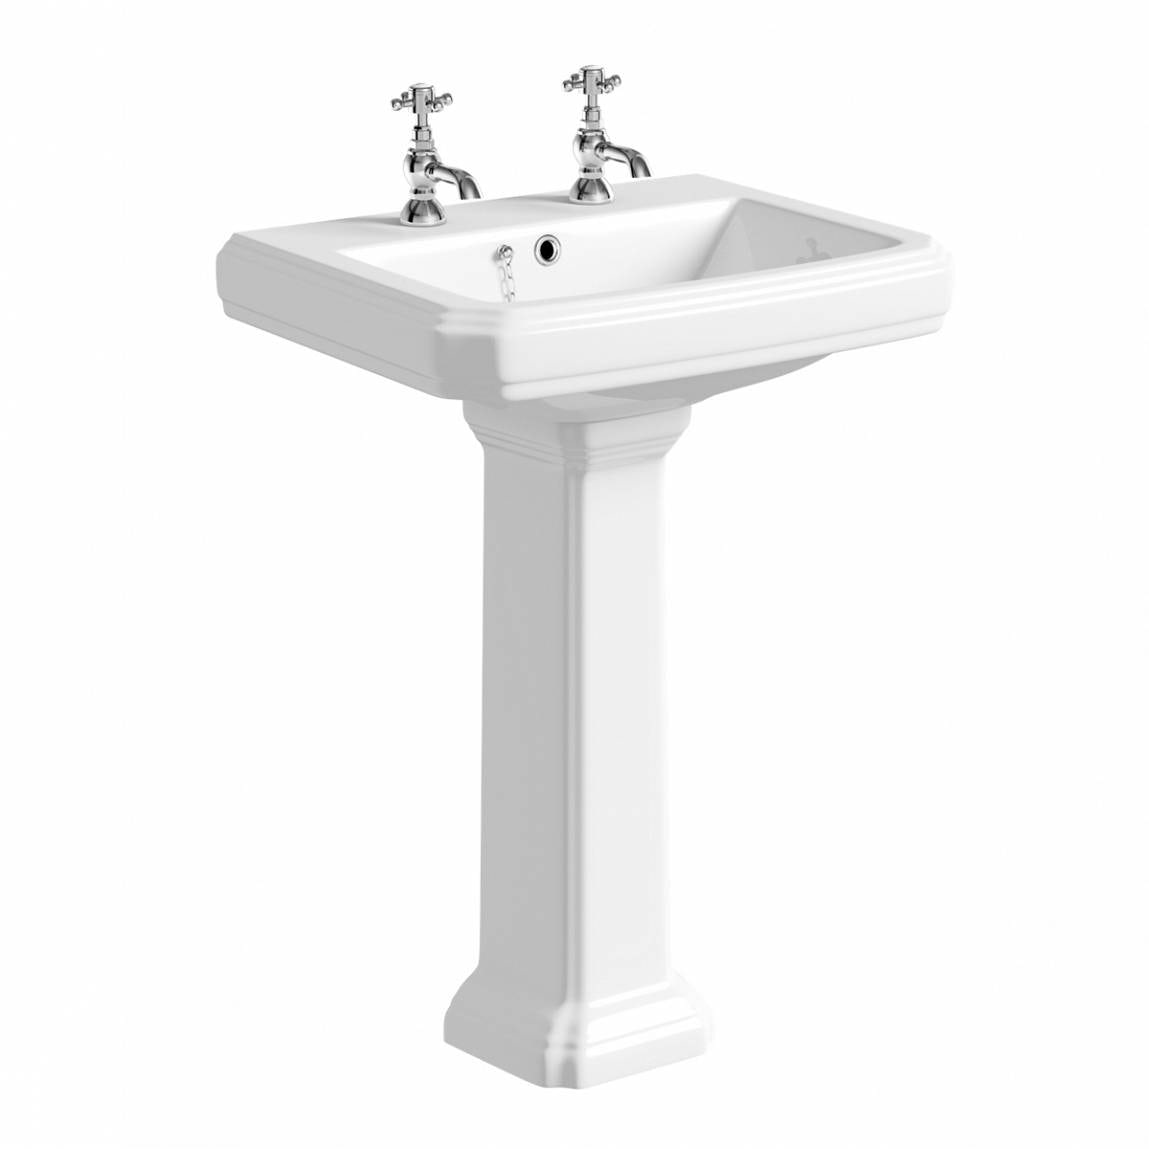 The Bath Co. Dulwich 2 tap hole full pedestal basin 600mm